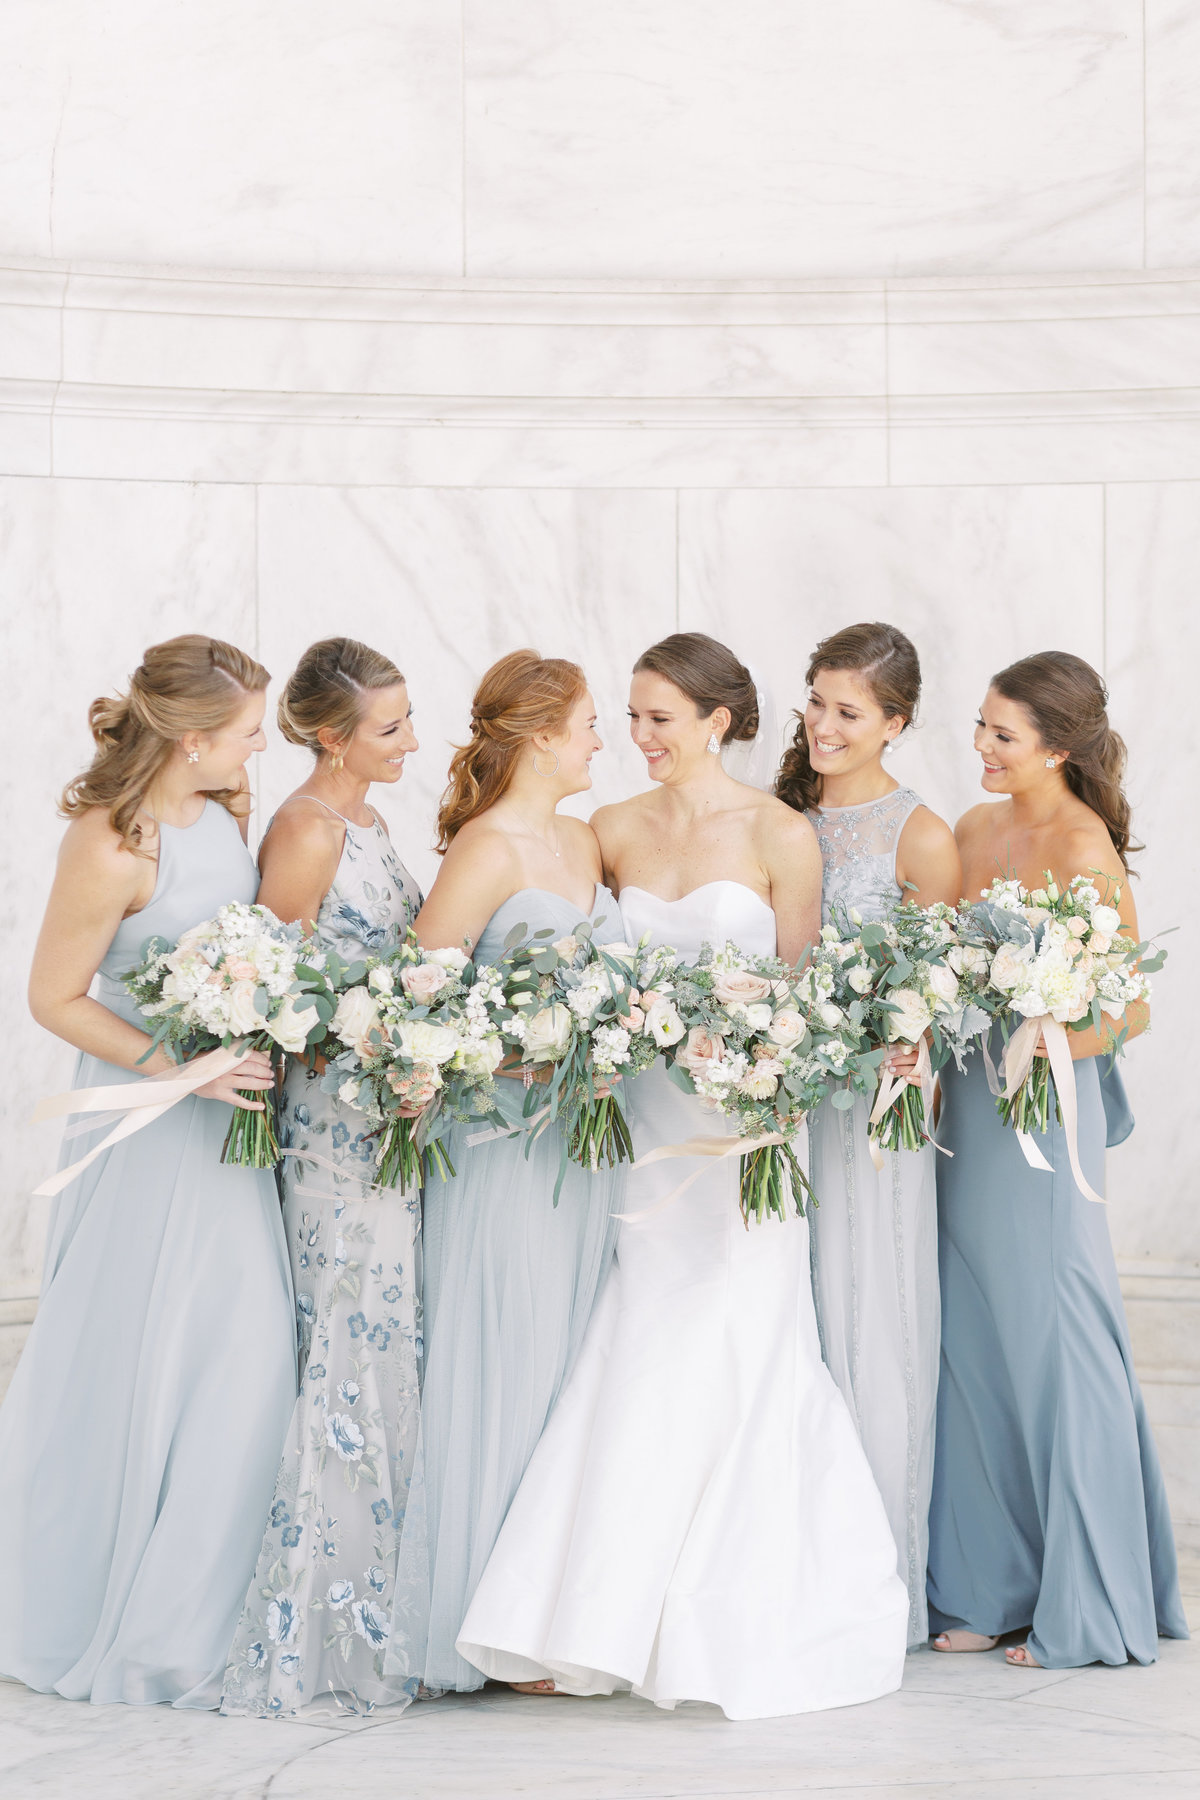 Mixmatched bridesmaids wedding at Jefferson Memorial in Washington, DC.